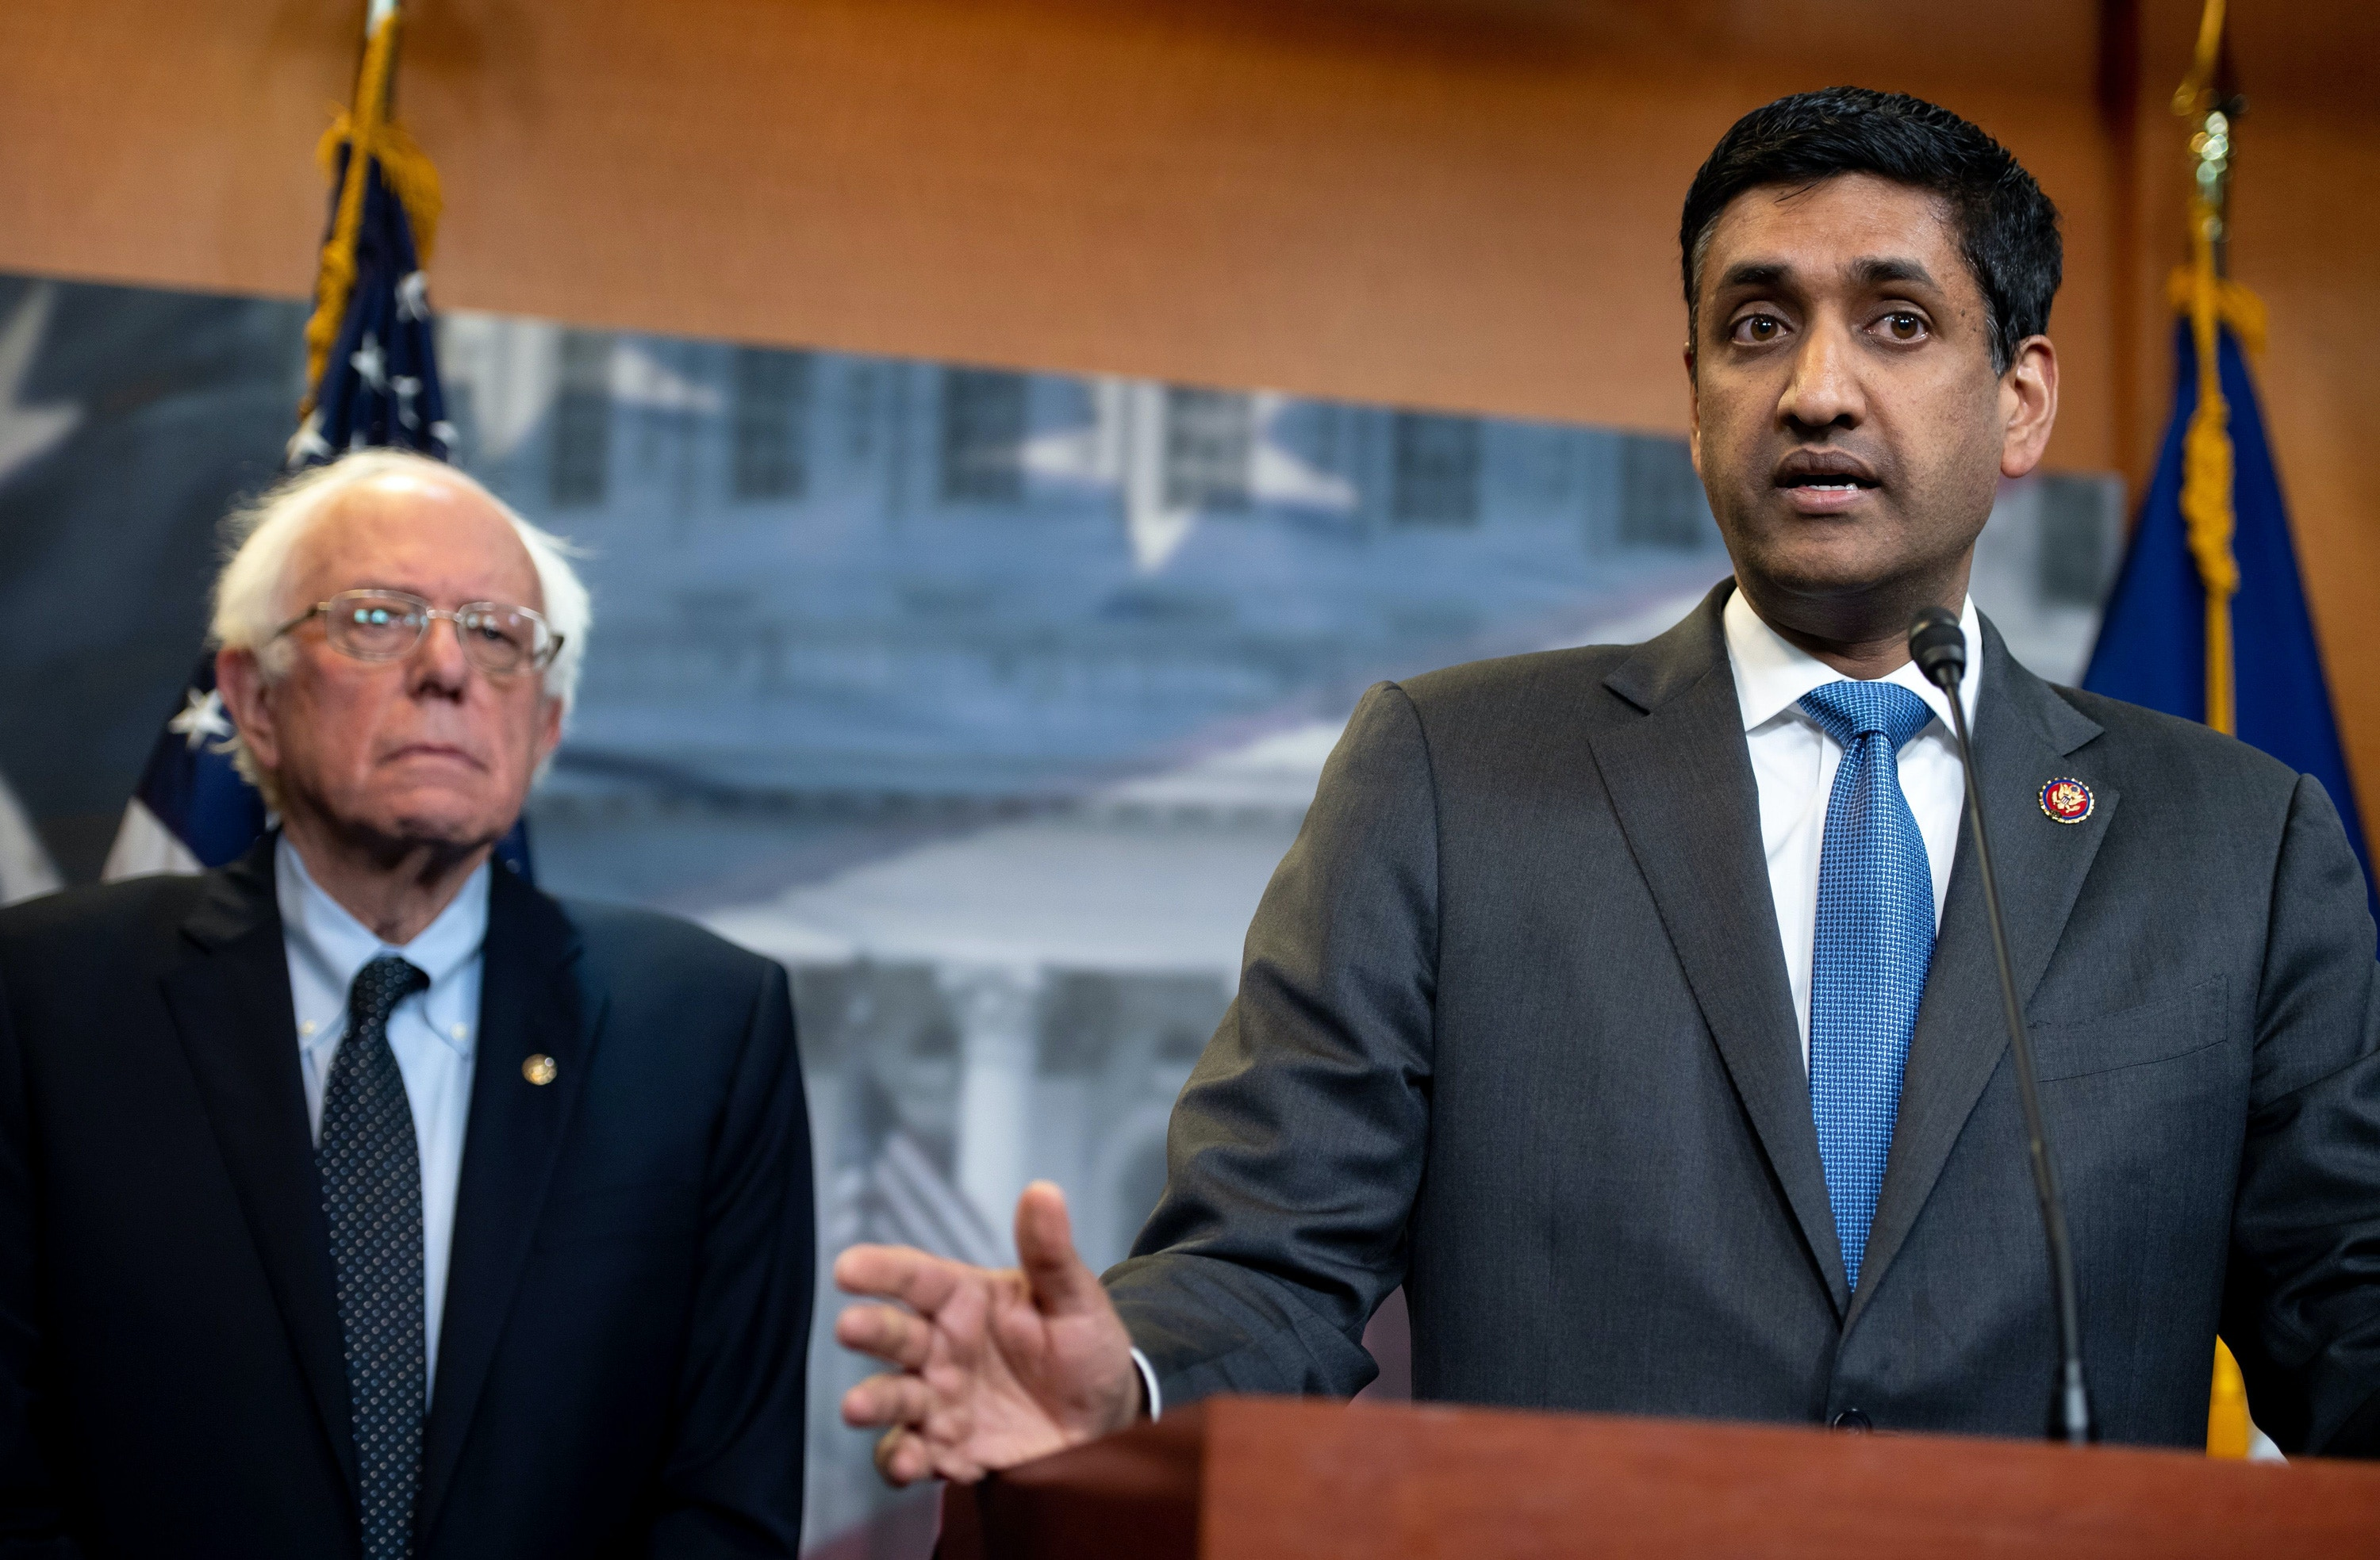 US Representative Ro Khanna (R), Democrat of California, and US Senator Bernie Sanders, Independent of Vermont, speak during a press conference following a vote in the US House on ending US military involvement in the war in Yemen, on Capitol Hill in Washington, DC, April 4, 2019. (Photo by SAUL LOEB / AFP)        (Photo credit should read SAUL LOEB/AFP/Getty Images)